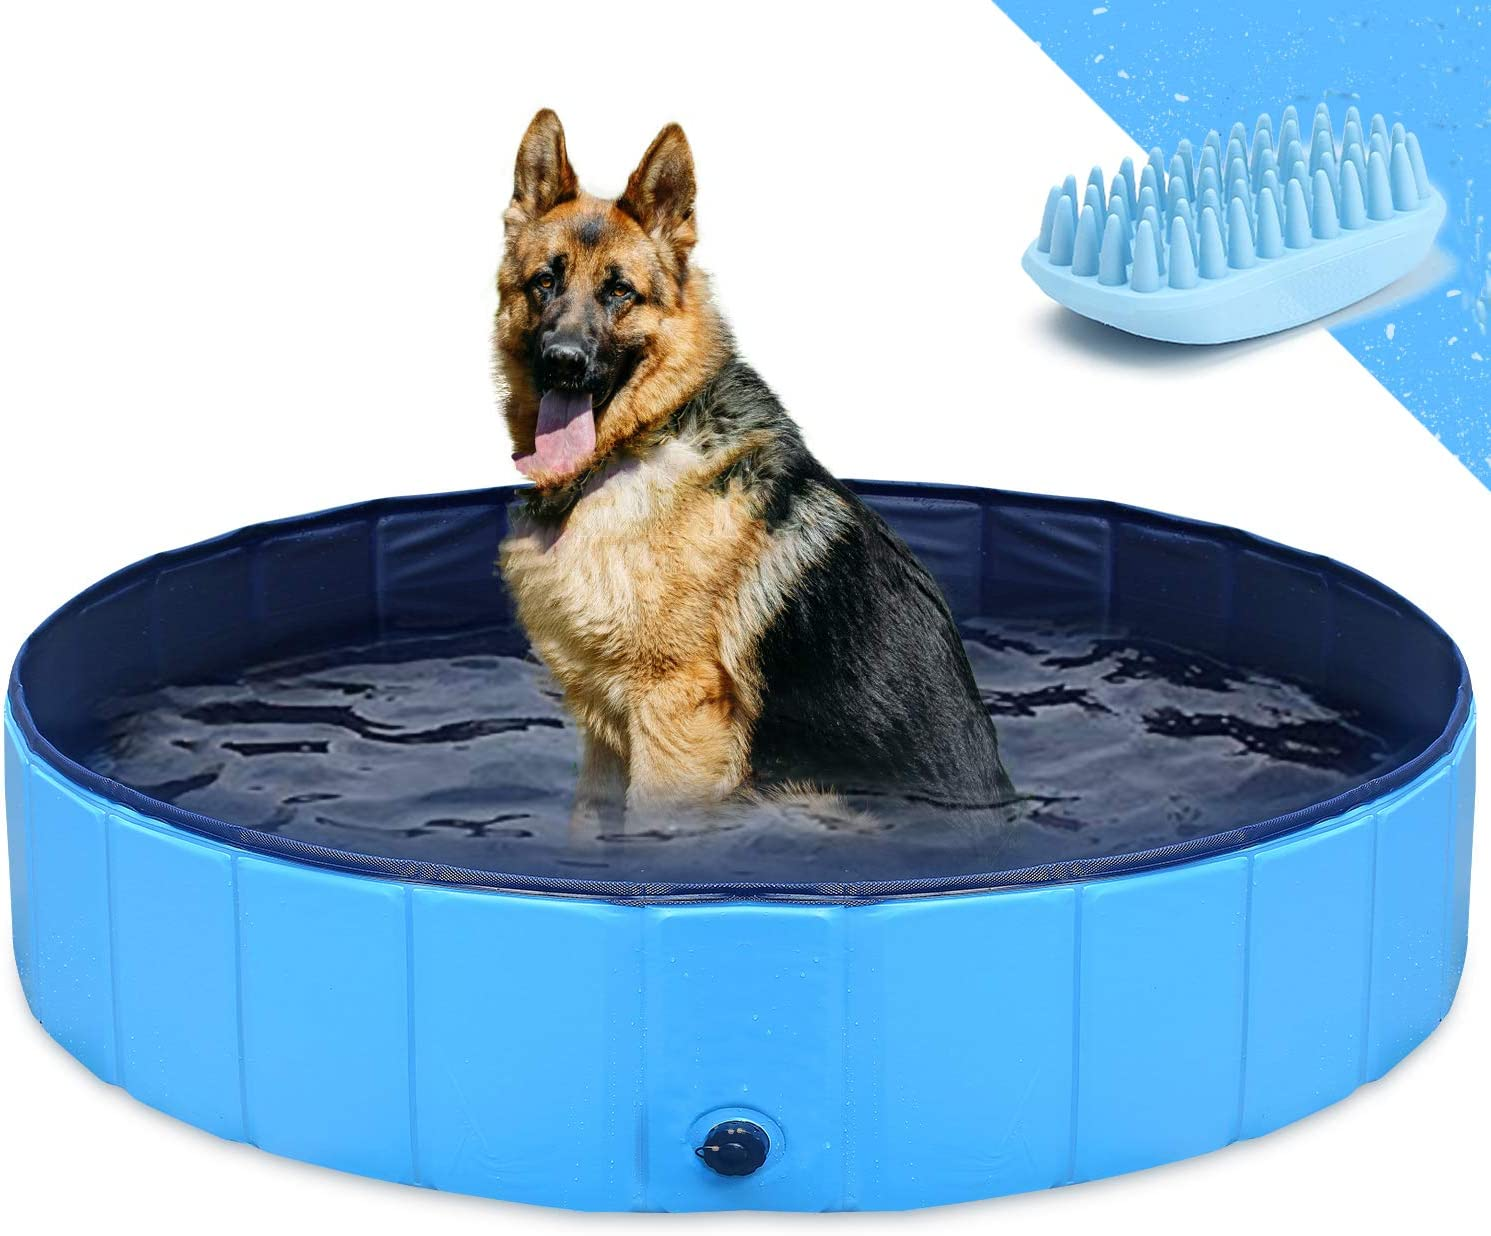 Gostock Dog Pool For Large Dogs Folding Kiddie Pool Pet Pools For Dogs Collapsible Pool For Dogs L 48 X12 Inch Pet Supplies